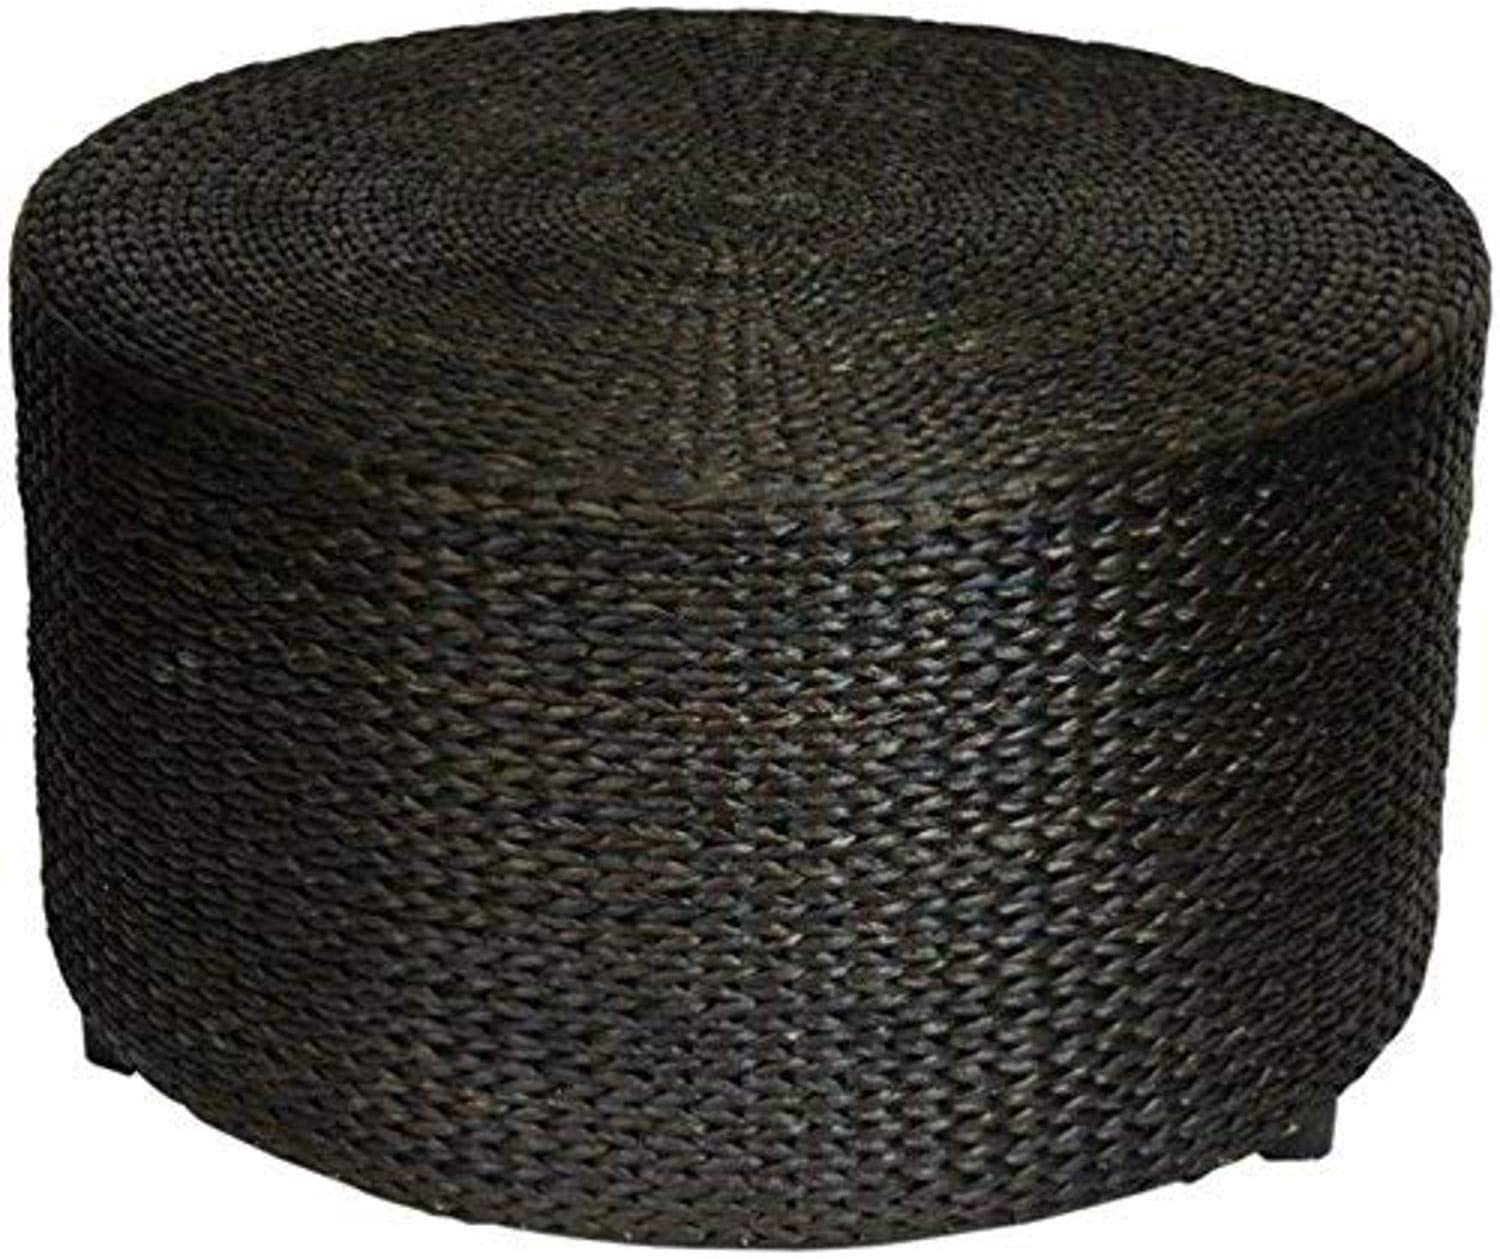 - Oriental Furniture Rustic Foot Stool, 30-Inch Woven Water Hyacinth